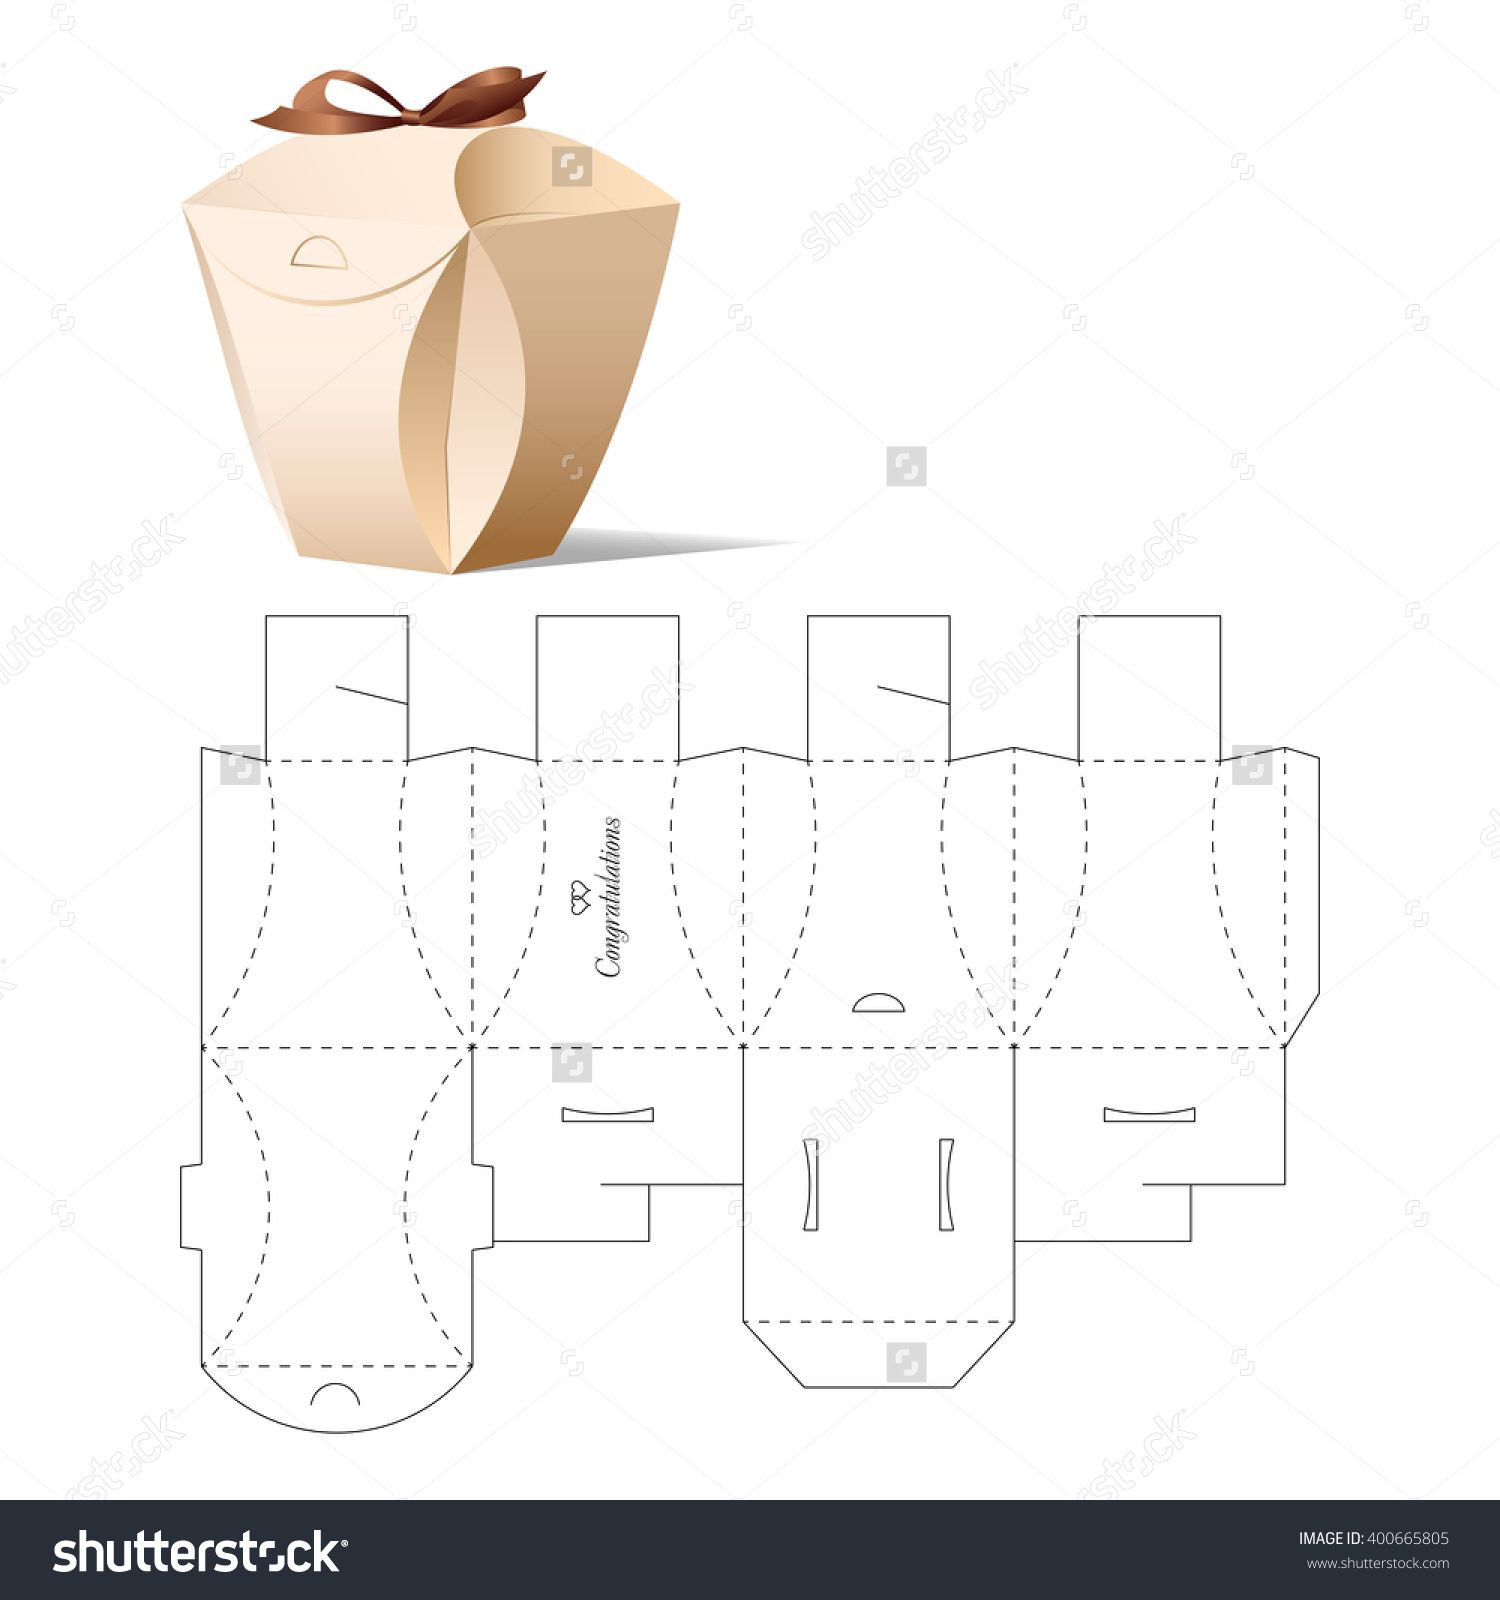 Retail Box With Blueprint Template Illustration